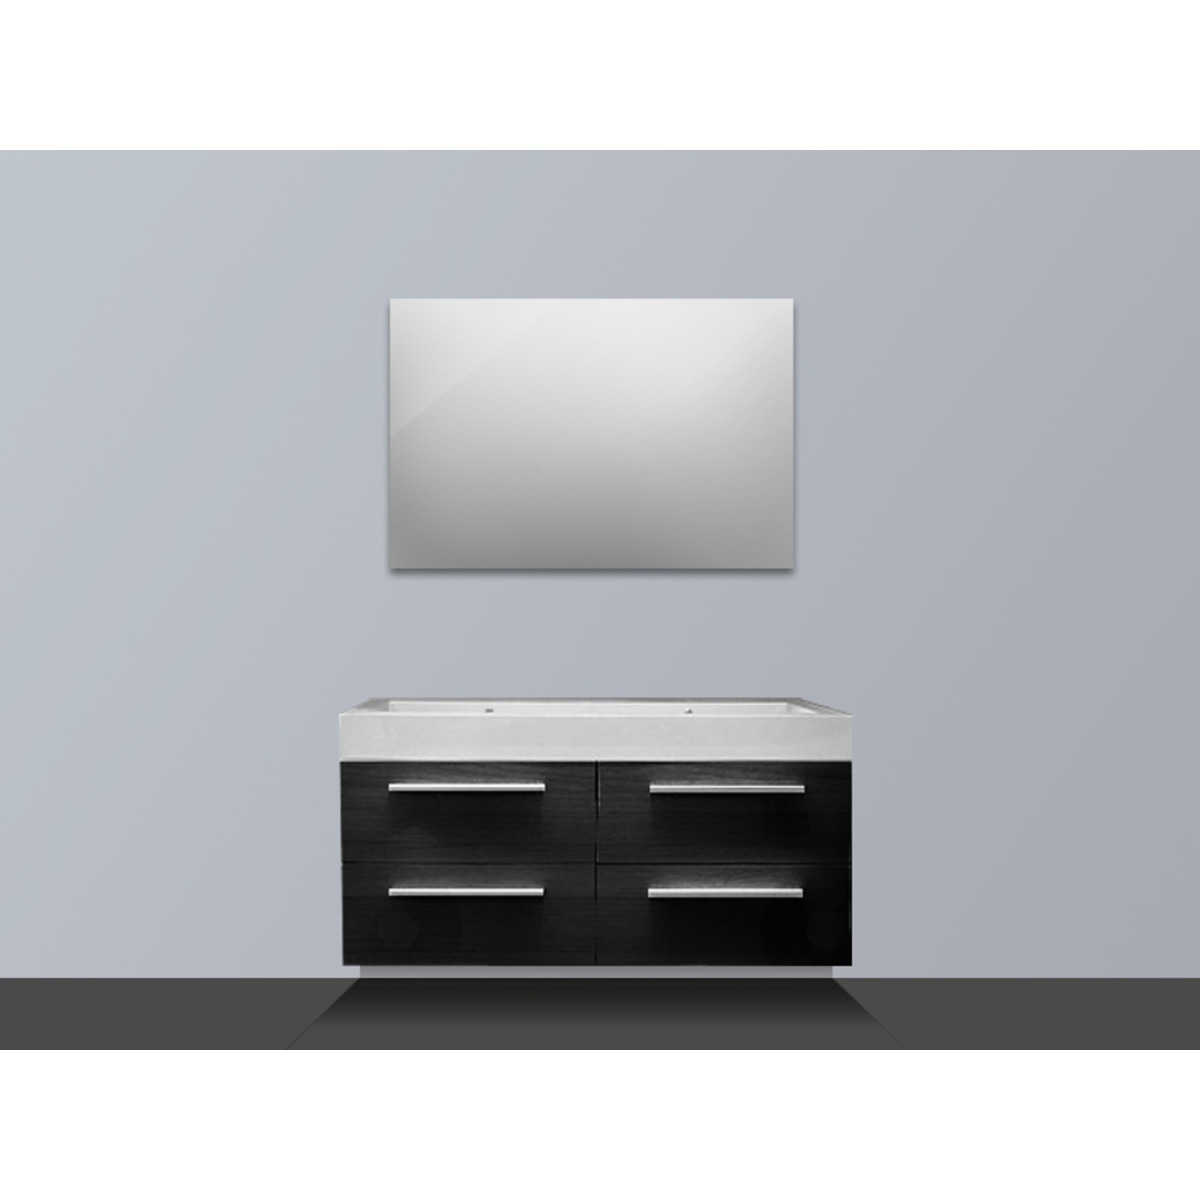 saniclass florence meuble salle de bain avec miroir black diamond sw7036. Black Bedroom Furniture Sets. Home Design Ideas